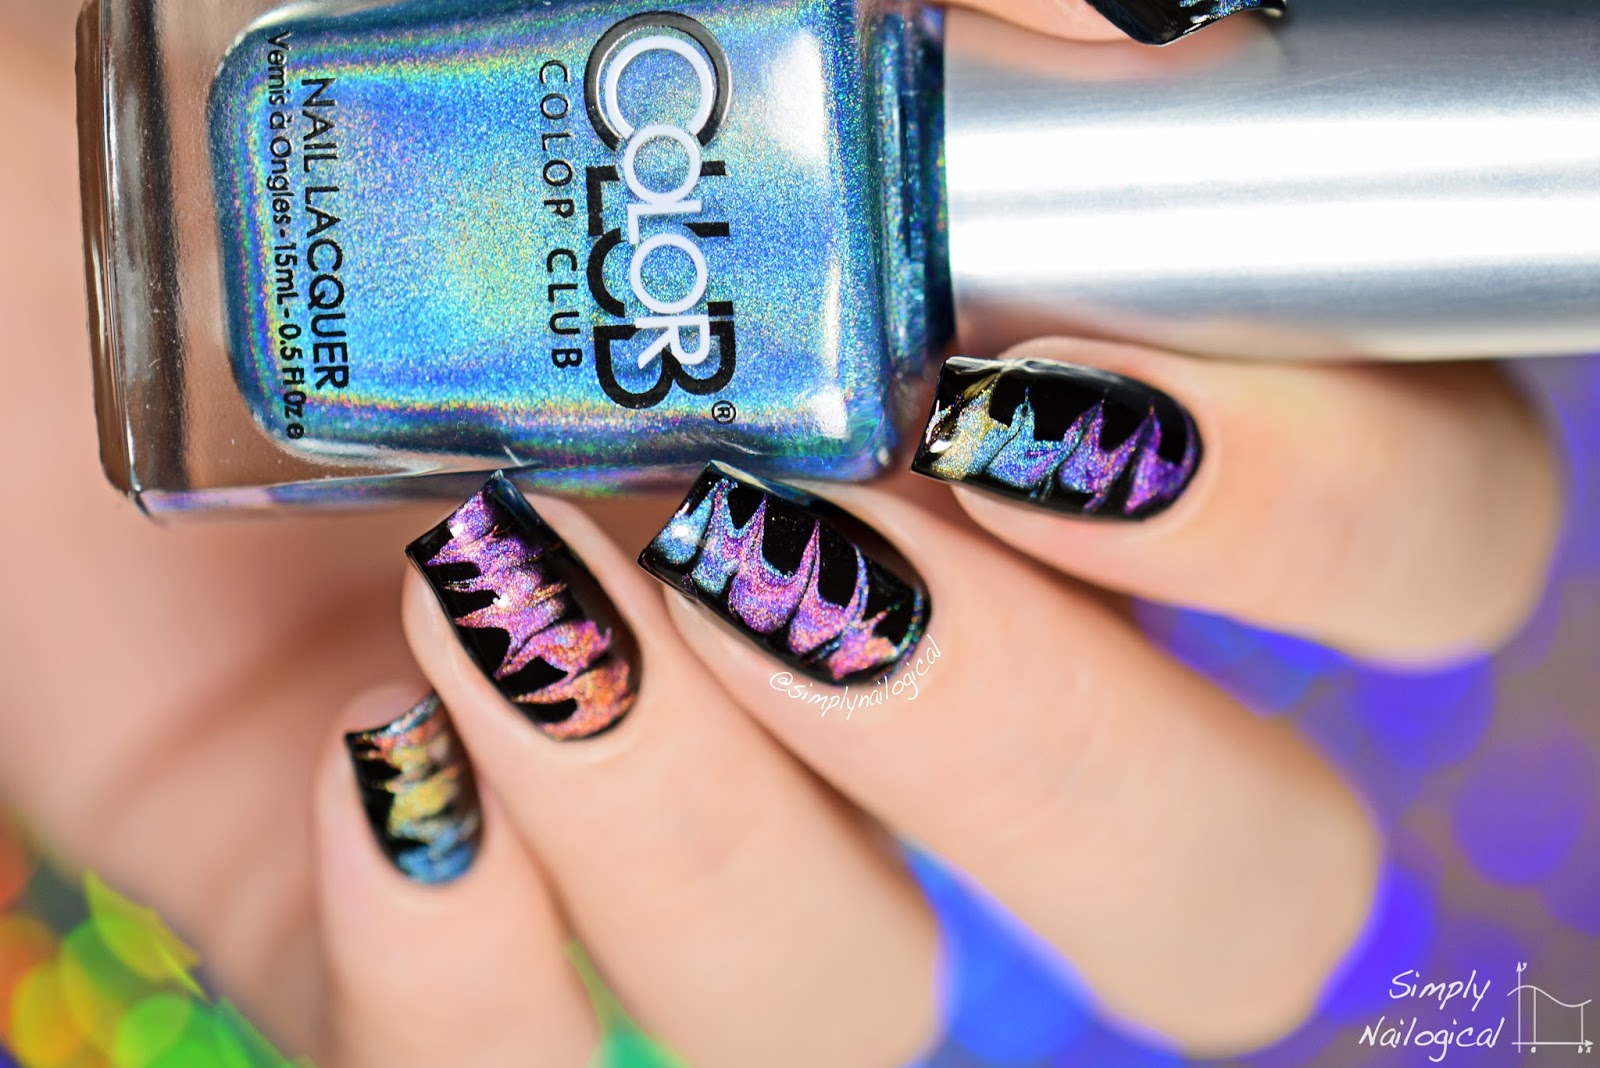 Simply Nailogical: No-water holographic (drag) watermarble!